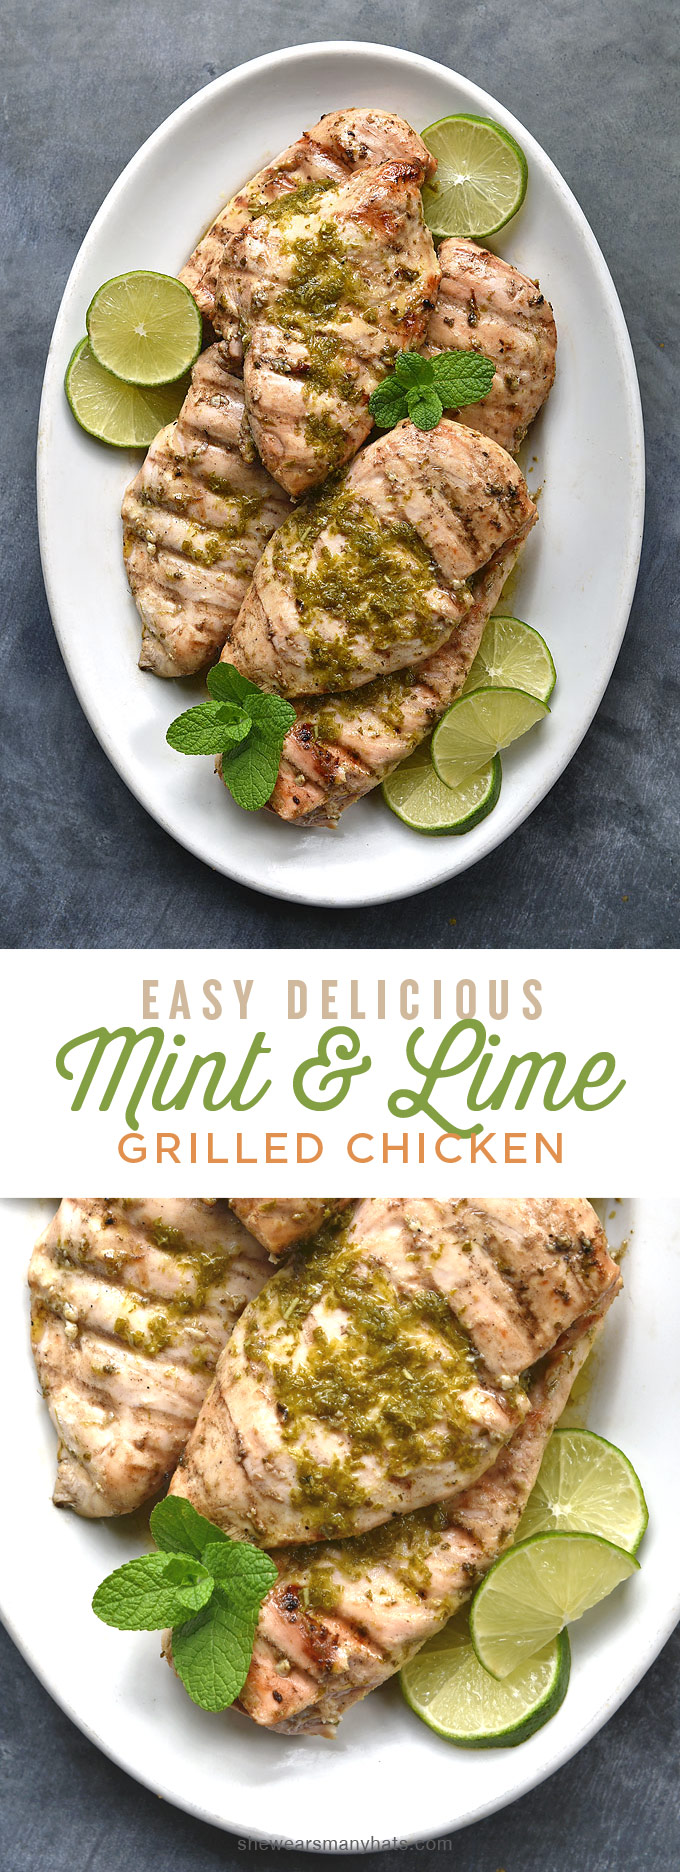 Mint Lime Grilled Chicken Breasts Recipe   shewearsmanyhats.com